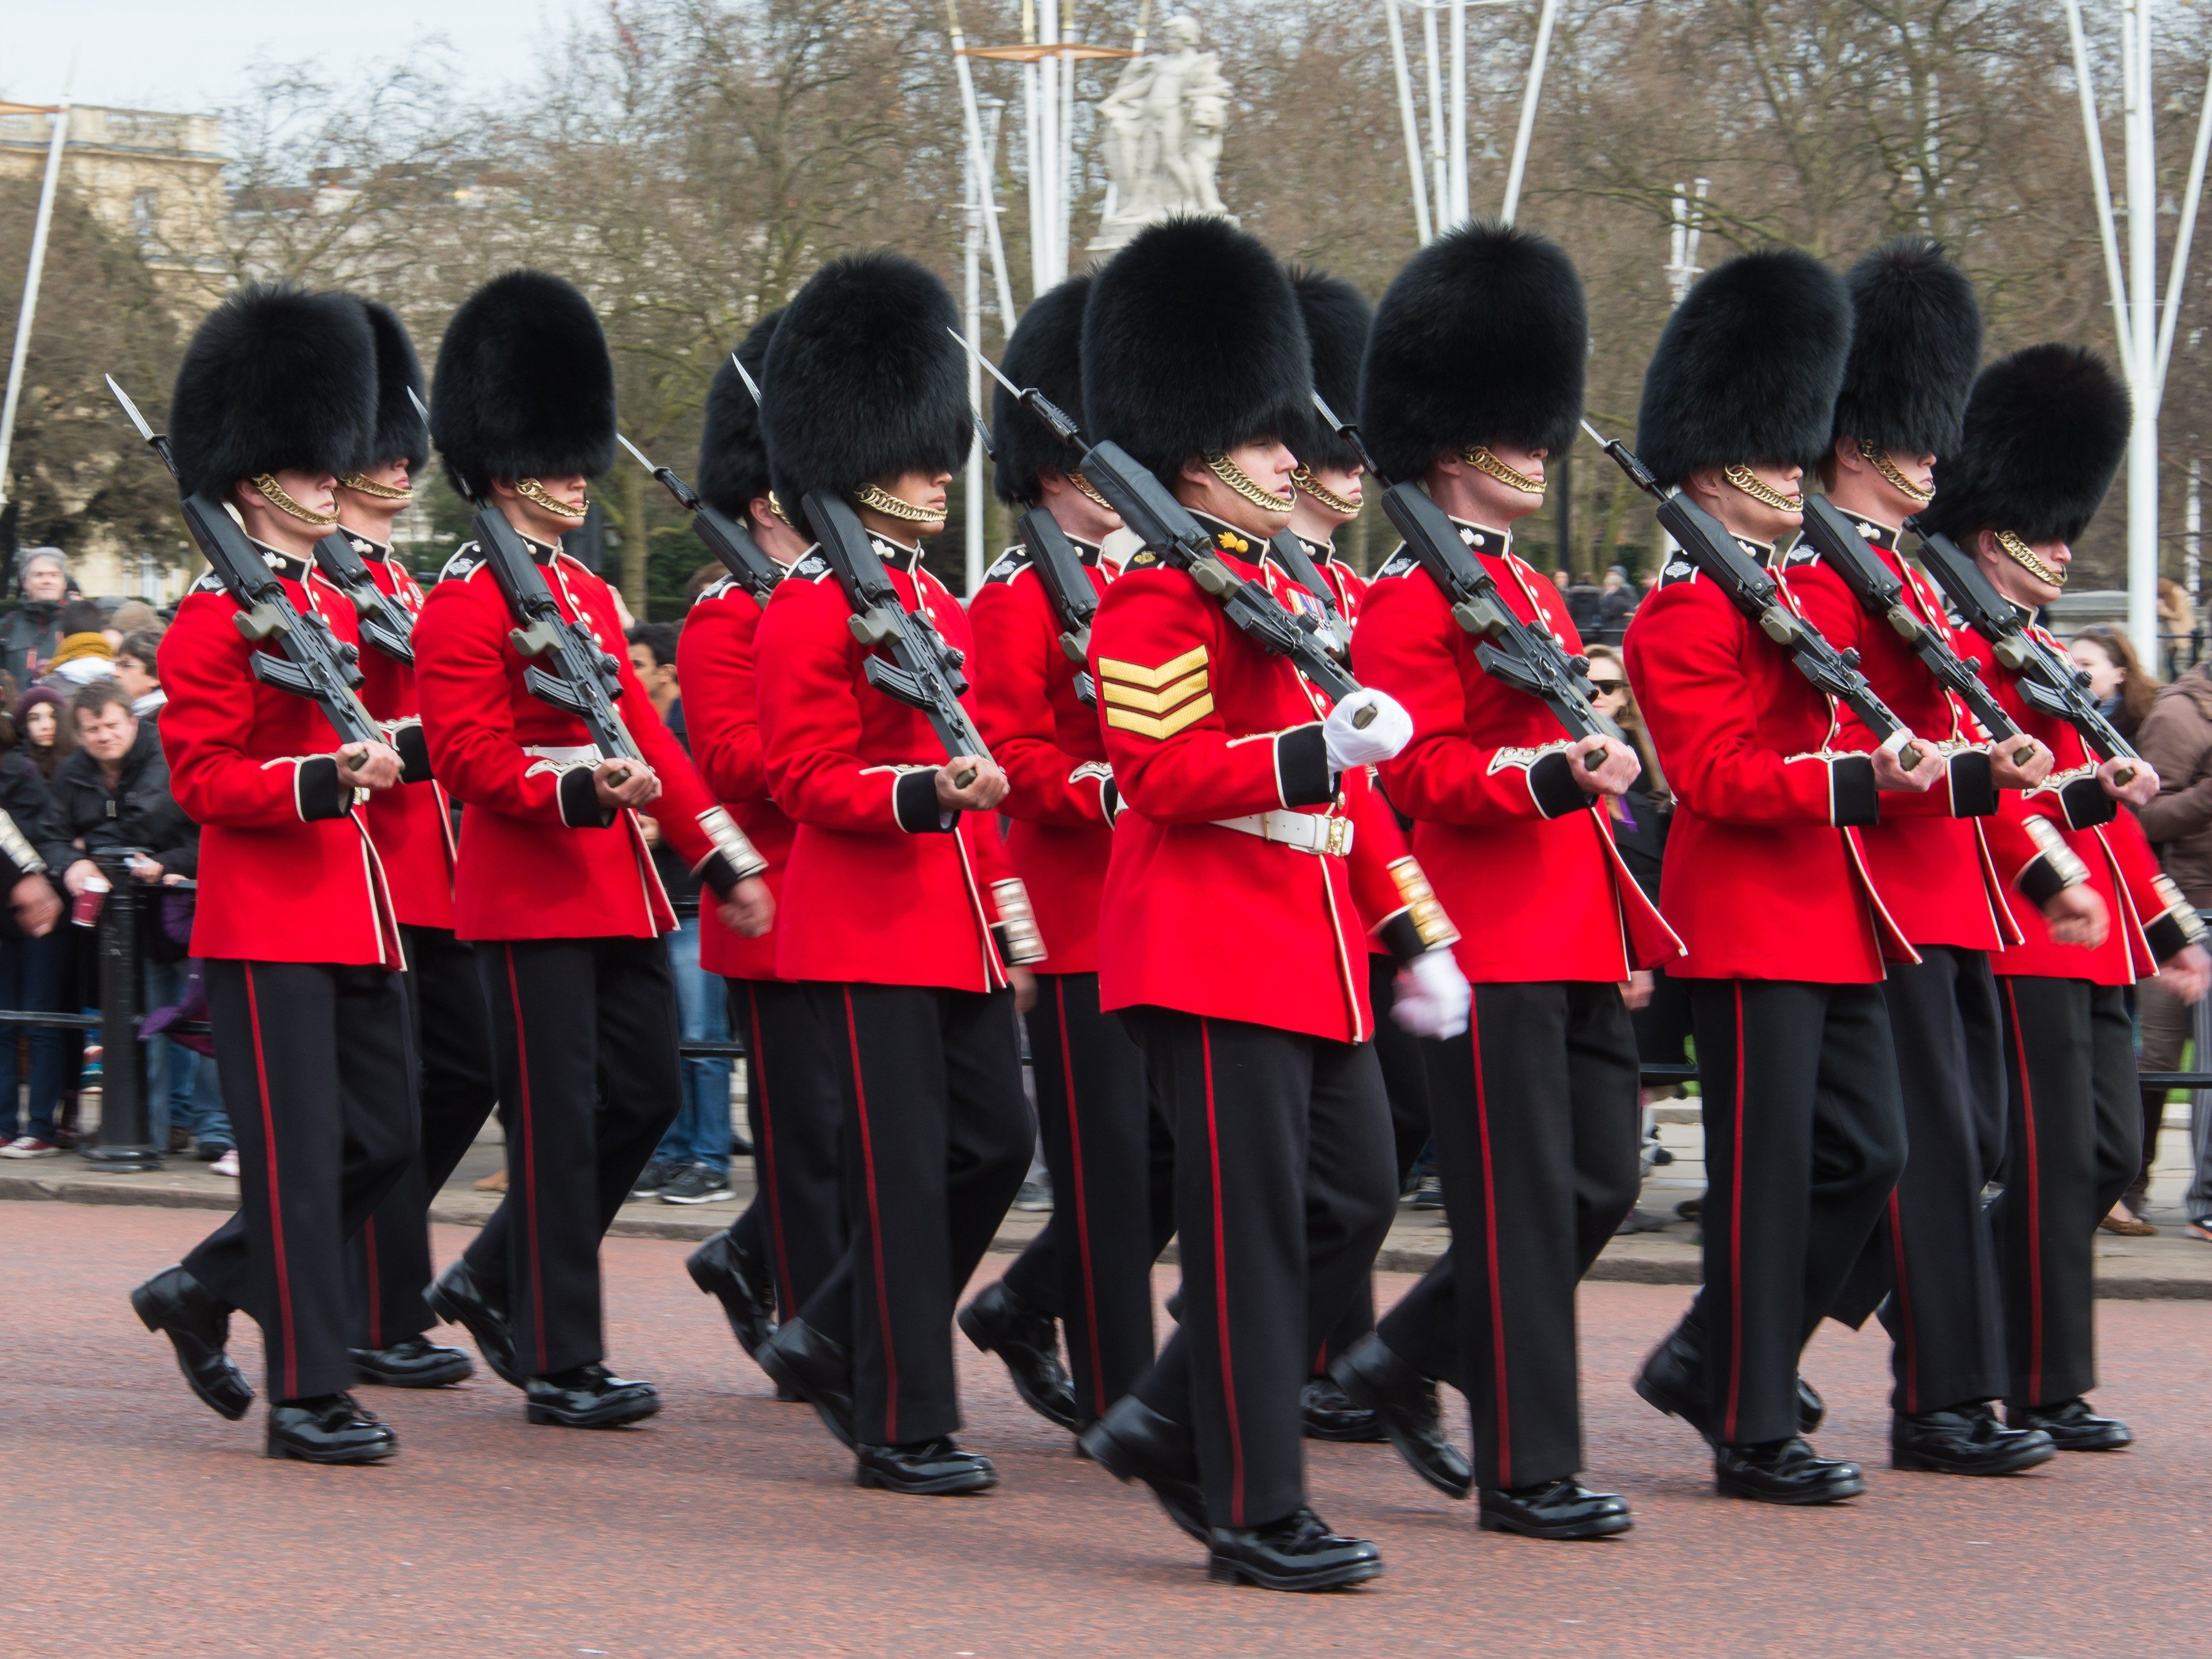 London attractions: Pomp and pageantry